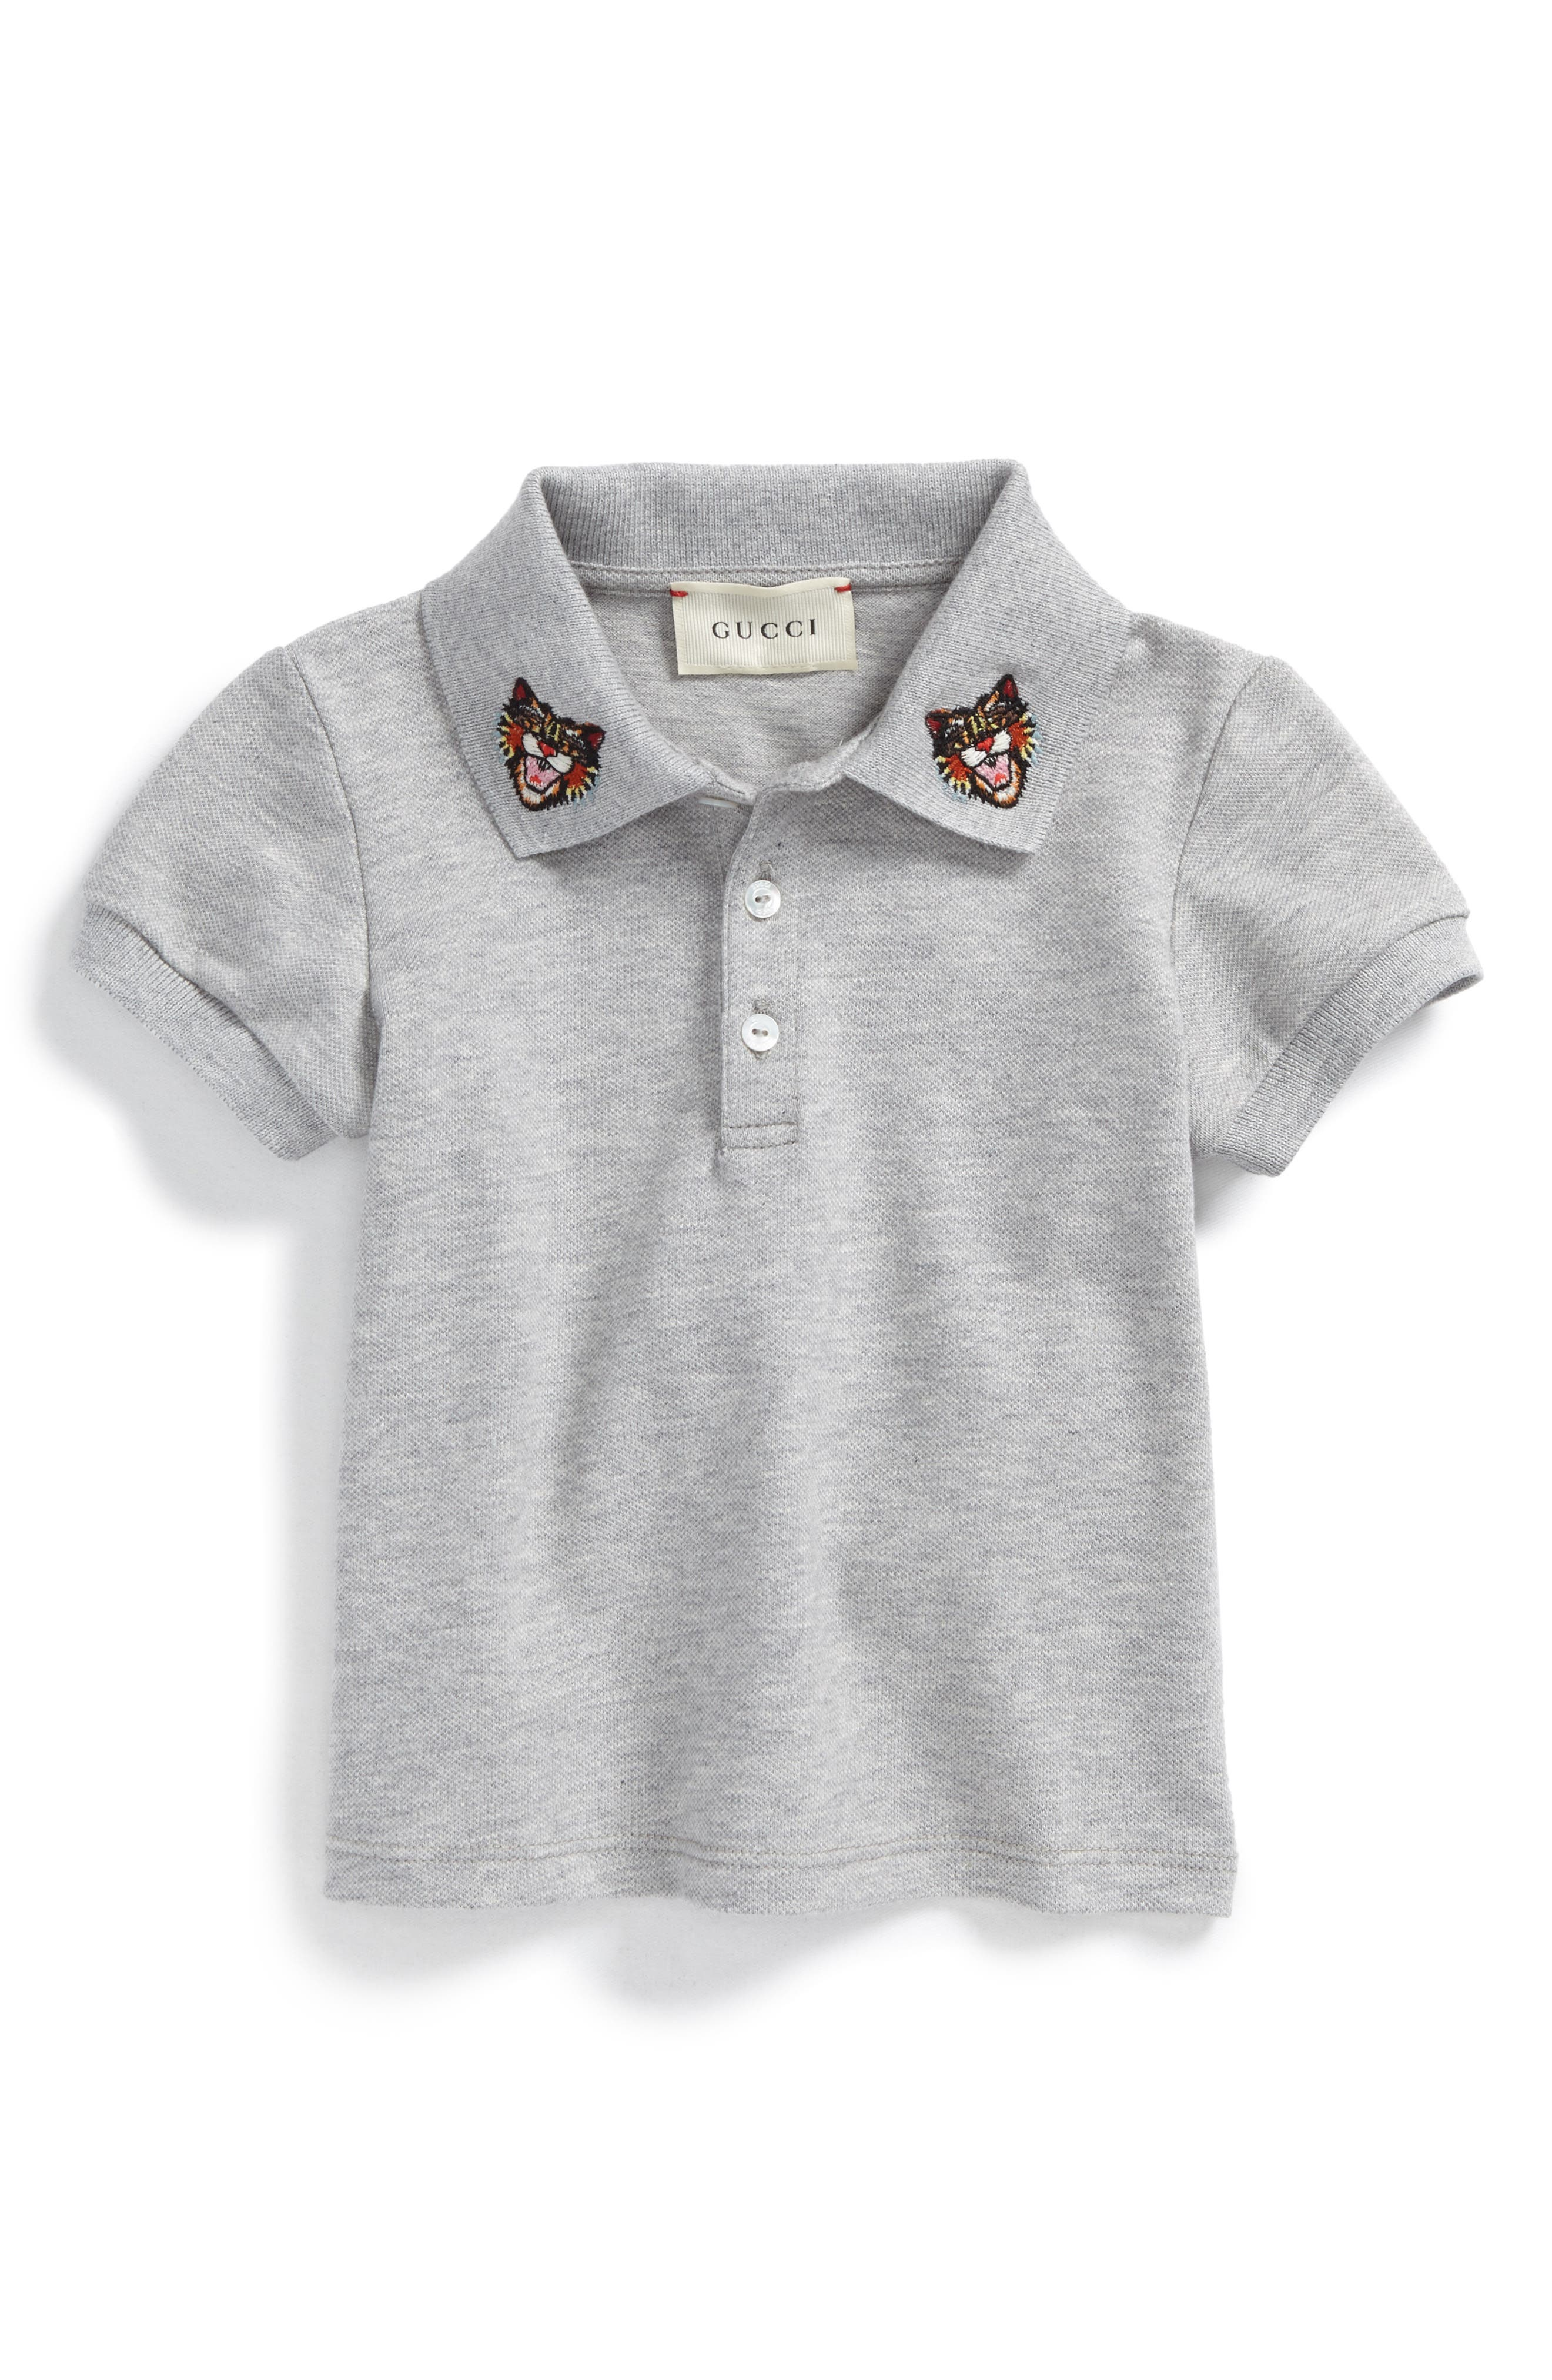 Gucci Embroidered Collar Polo (Baby Boys)